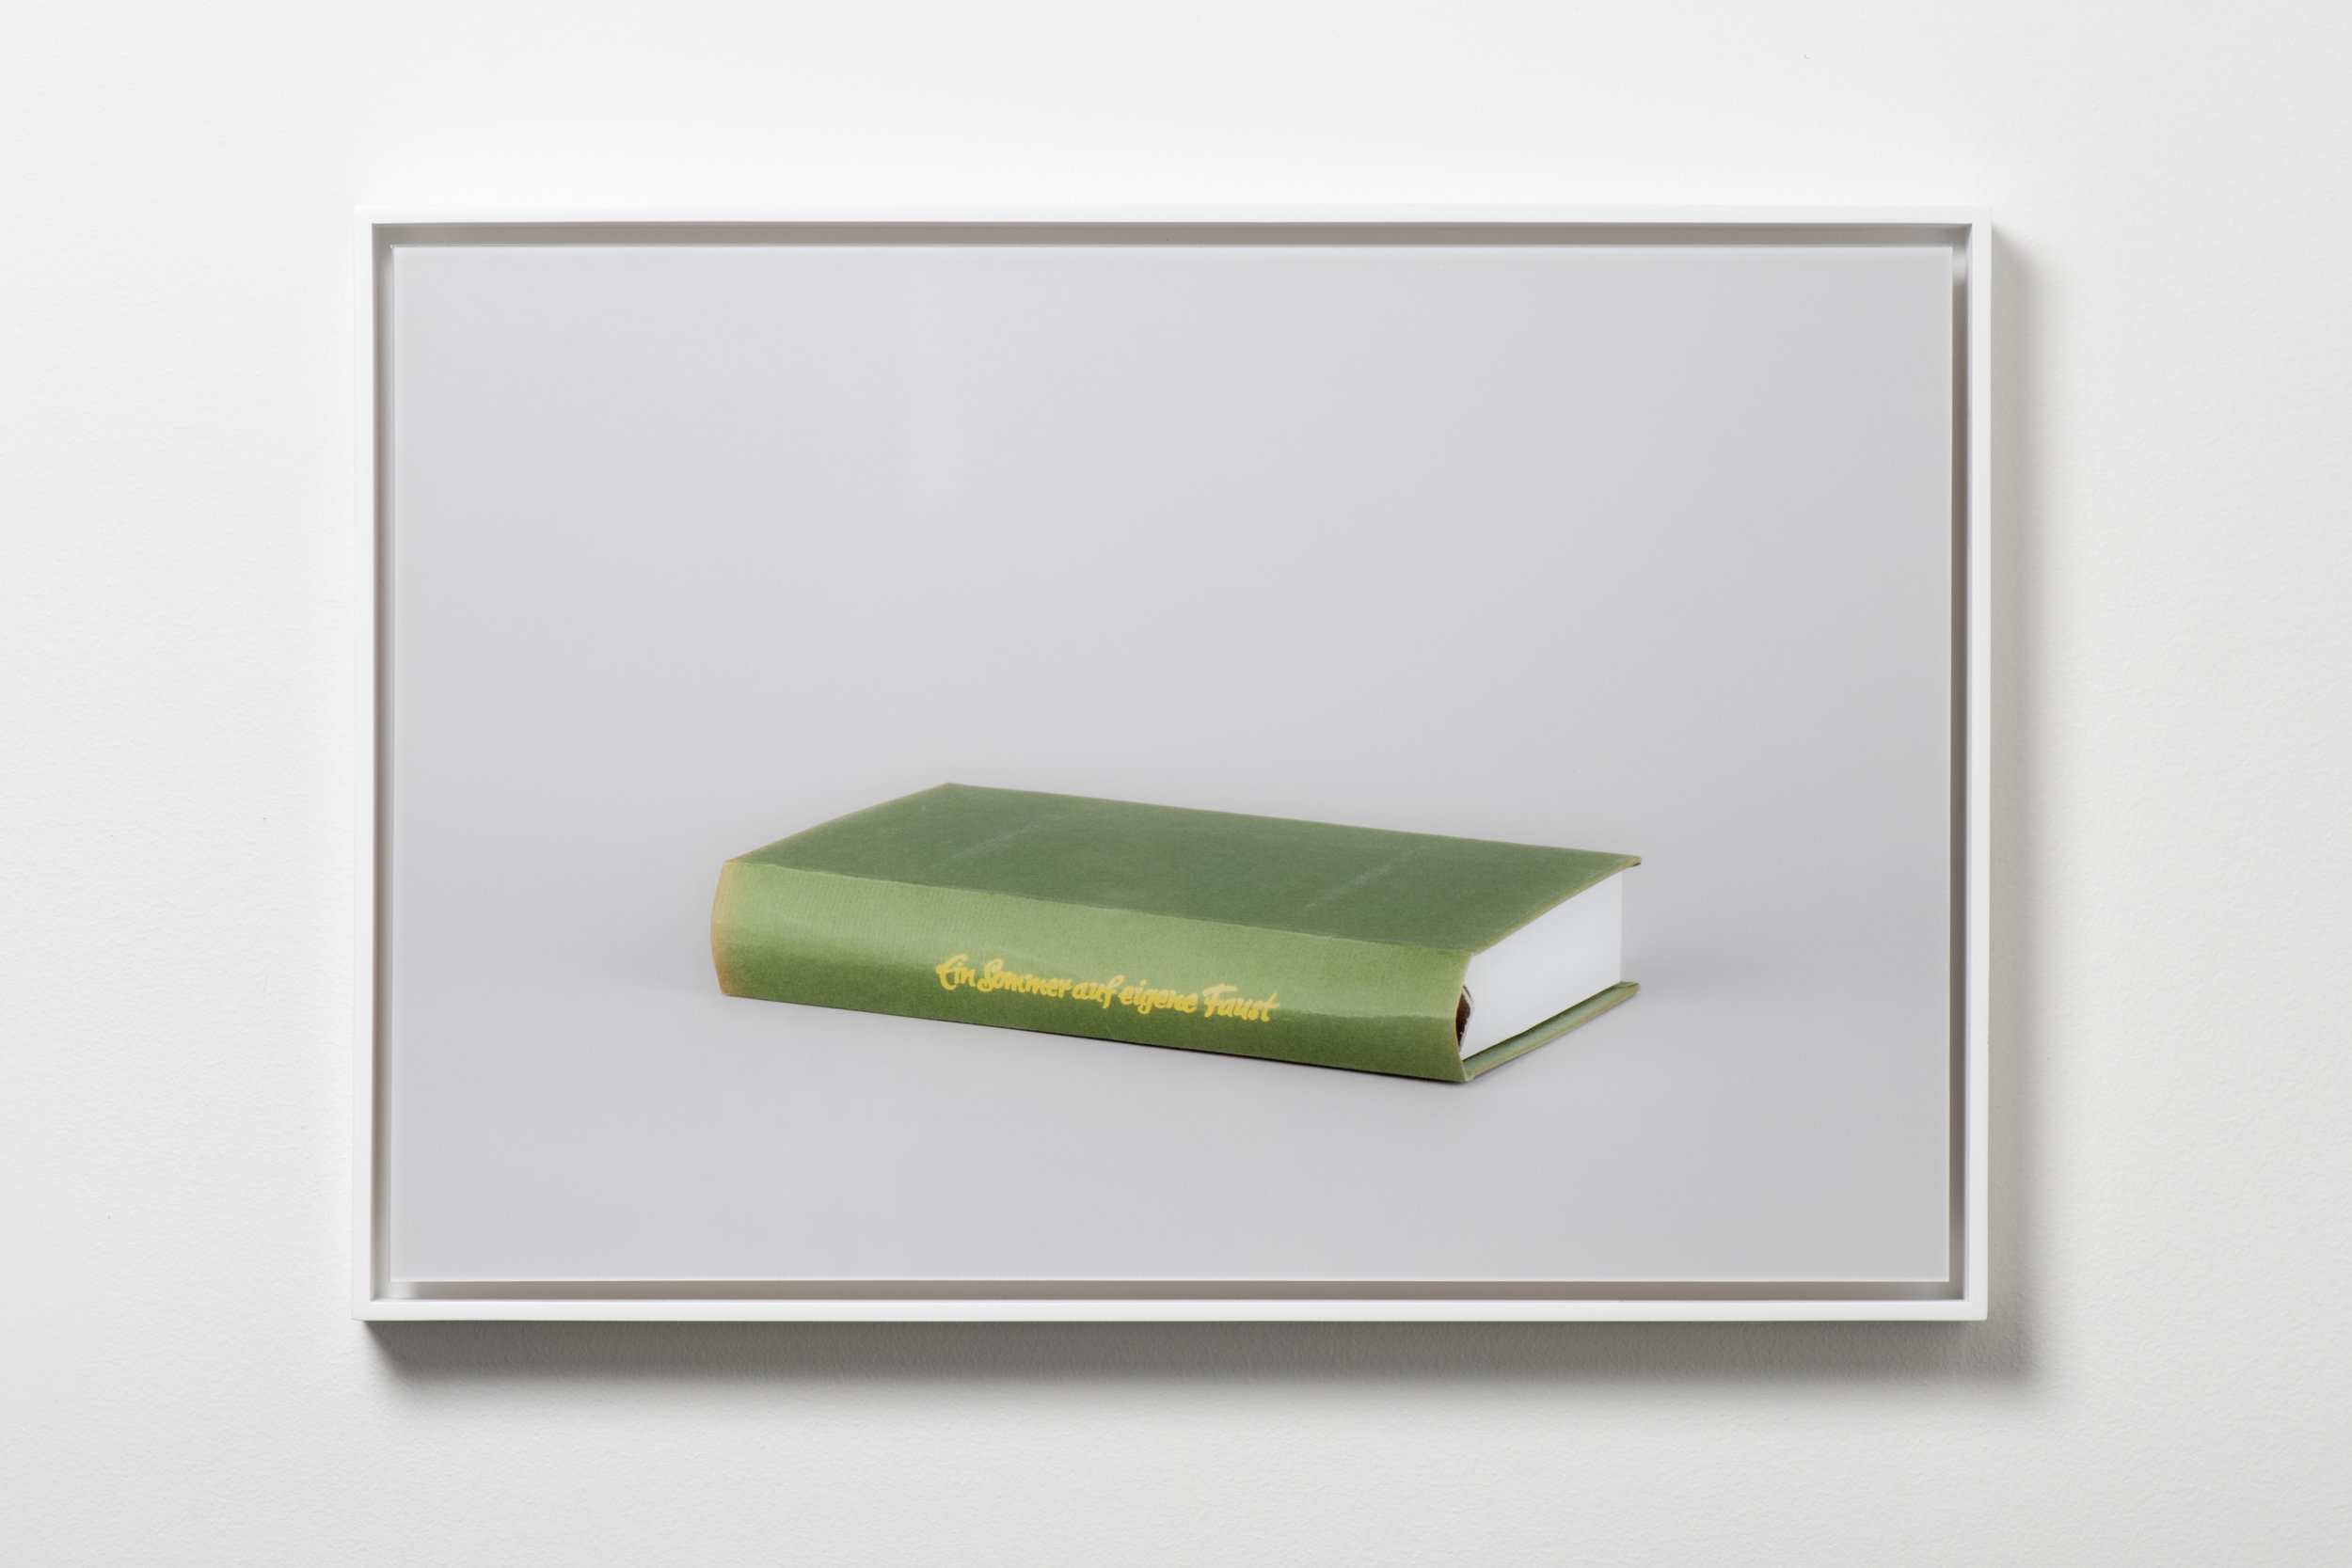 The Summer of My Own Fist (Ein Sommer auf eigene Faust) , 2017 Framed chromogenic print 13 3/16 x 19 7/8 inches Edition of 5 + 2 APs KISC-0007 $2,400